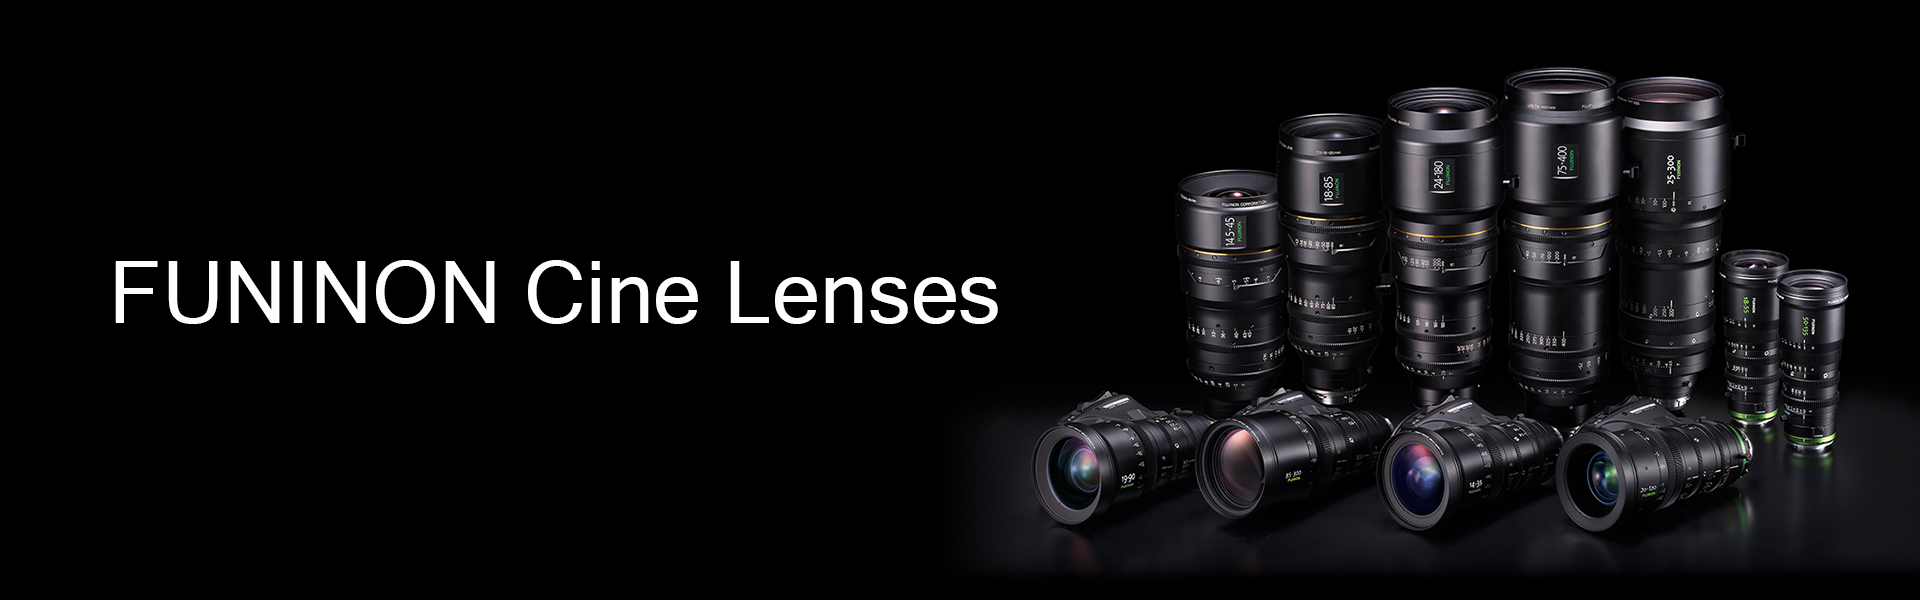 [photo] All the models of Fujinon Cine Lenses stacked upright next to each other in front of black background